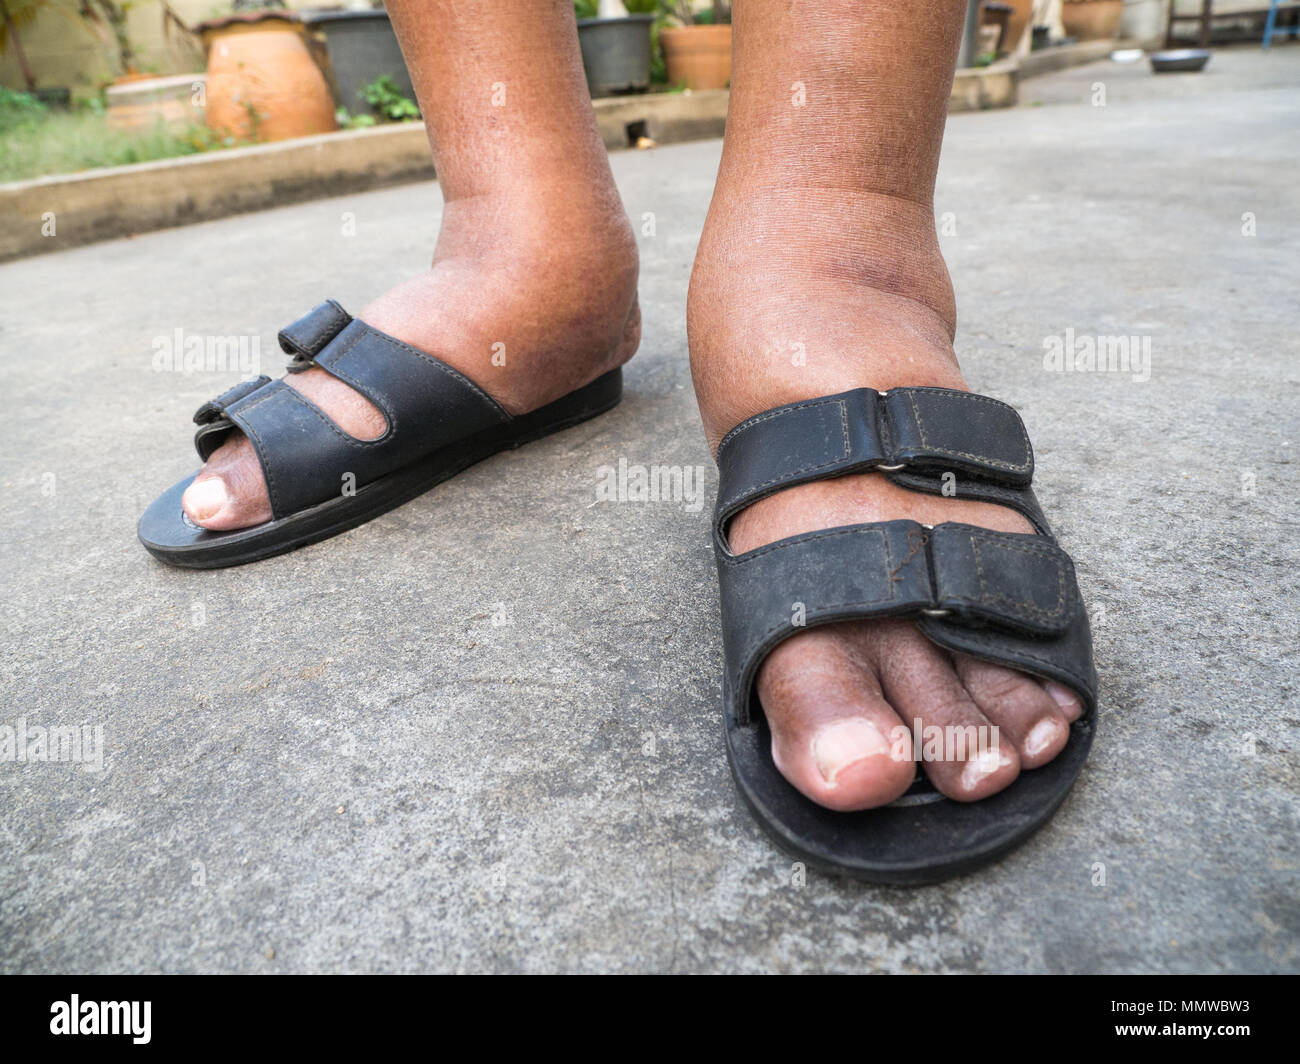 86f2806e7ade8f Ugly Feet Stock Photos   Ugly Feet Stock Images - Alamy